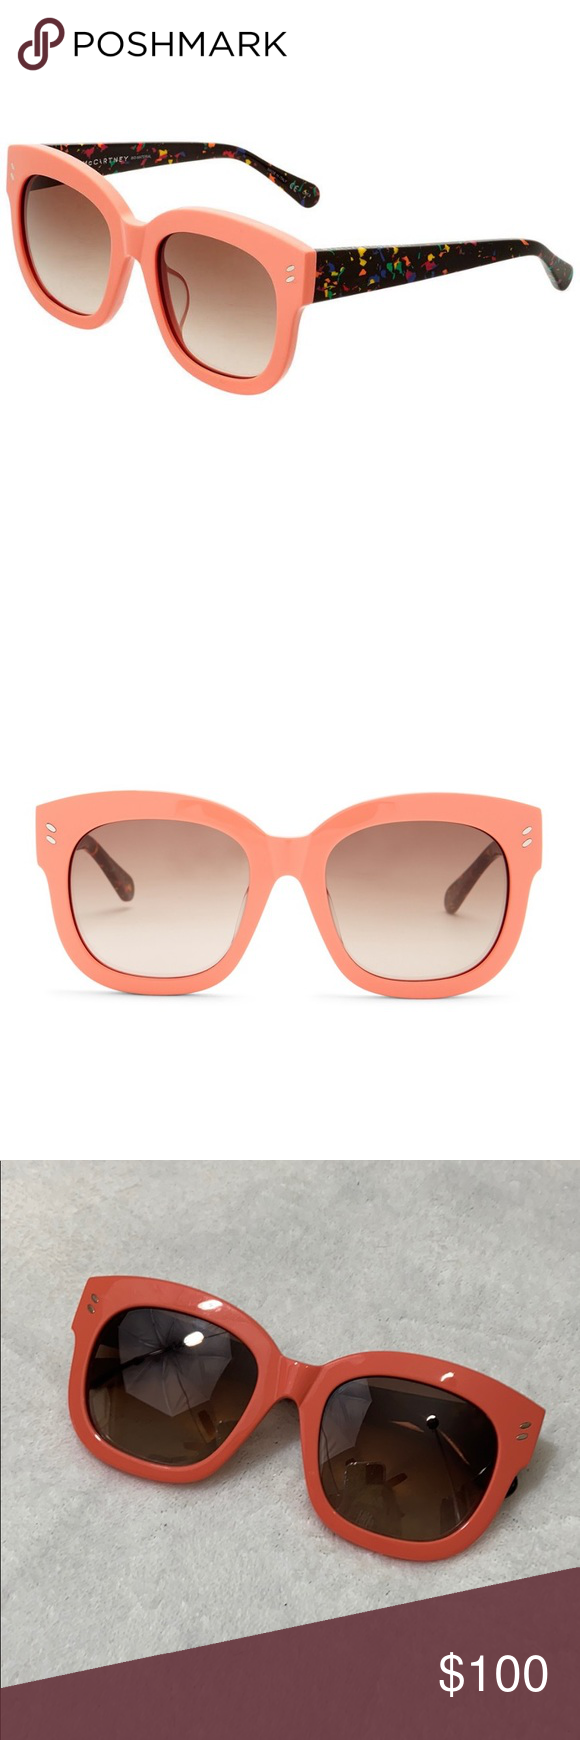 Stella McCartney Sc0026sa 52mm Sunglasses Stella